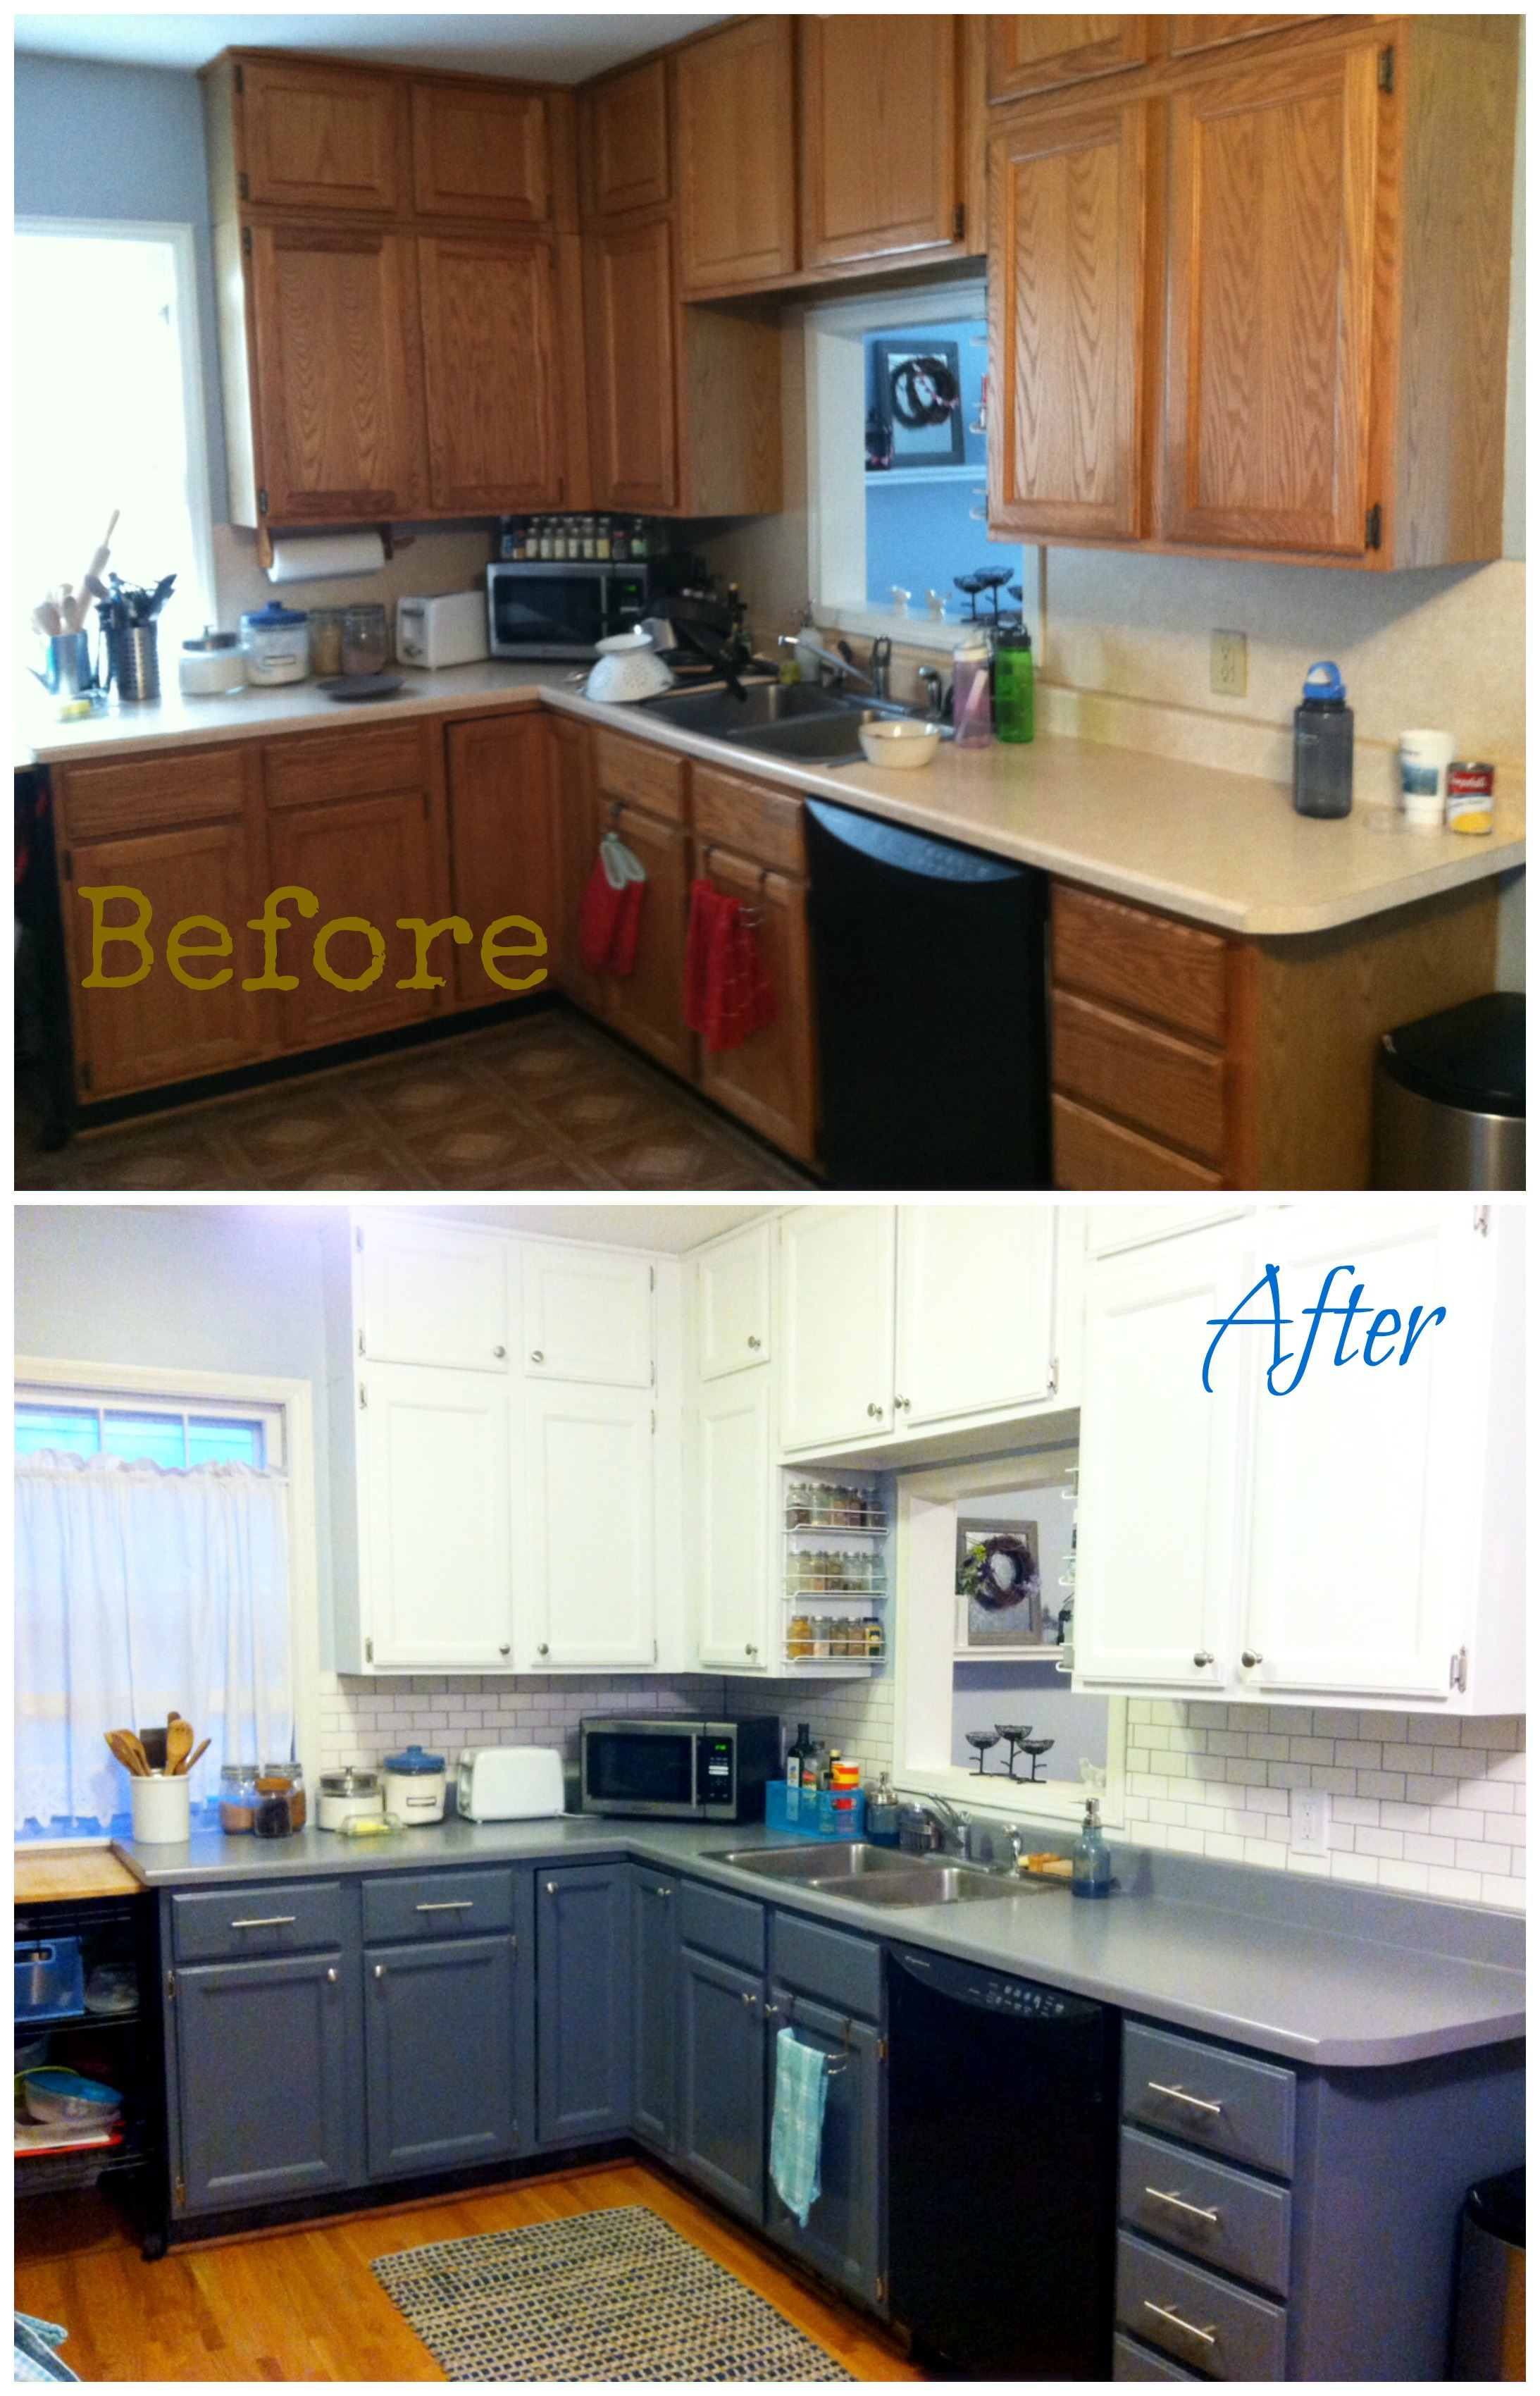 Before after laminate countertop goes 28 images for Painting kitchen countertops before and after